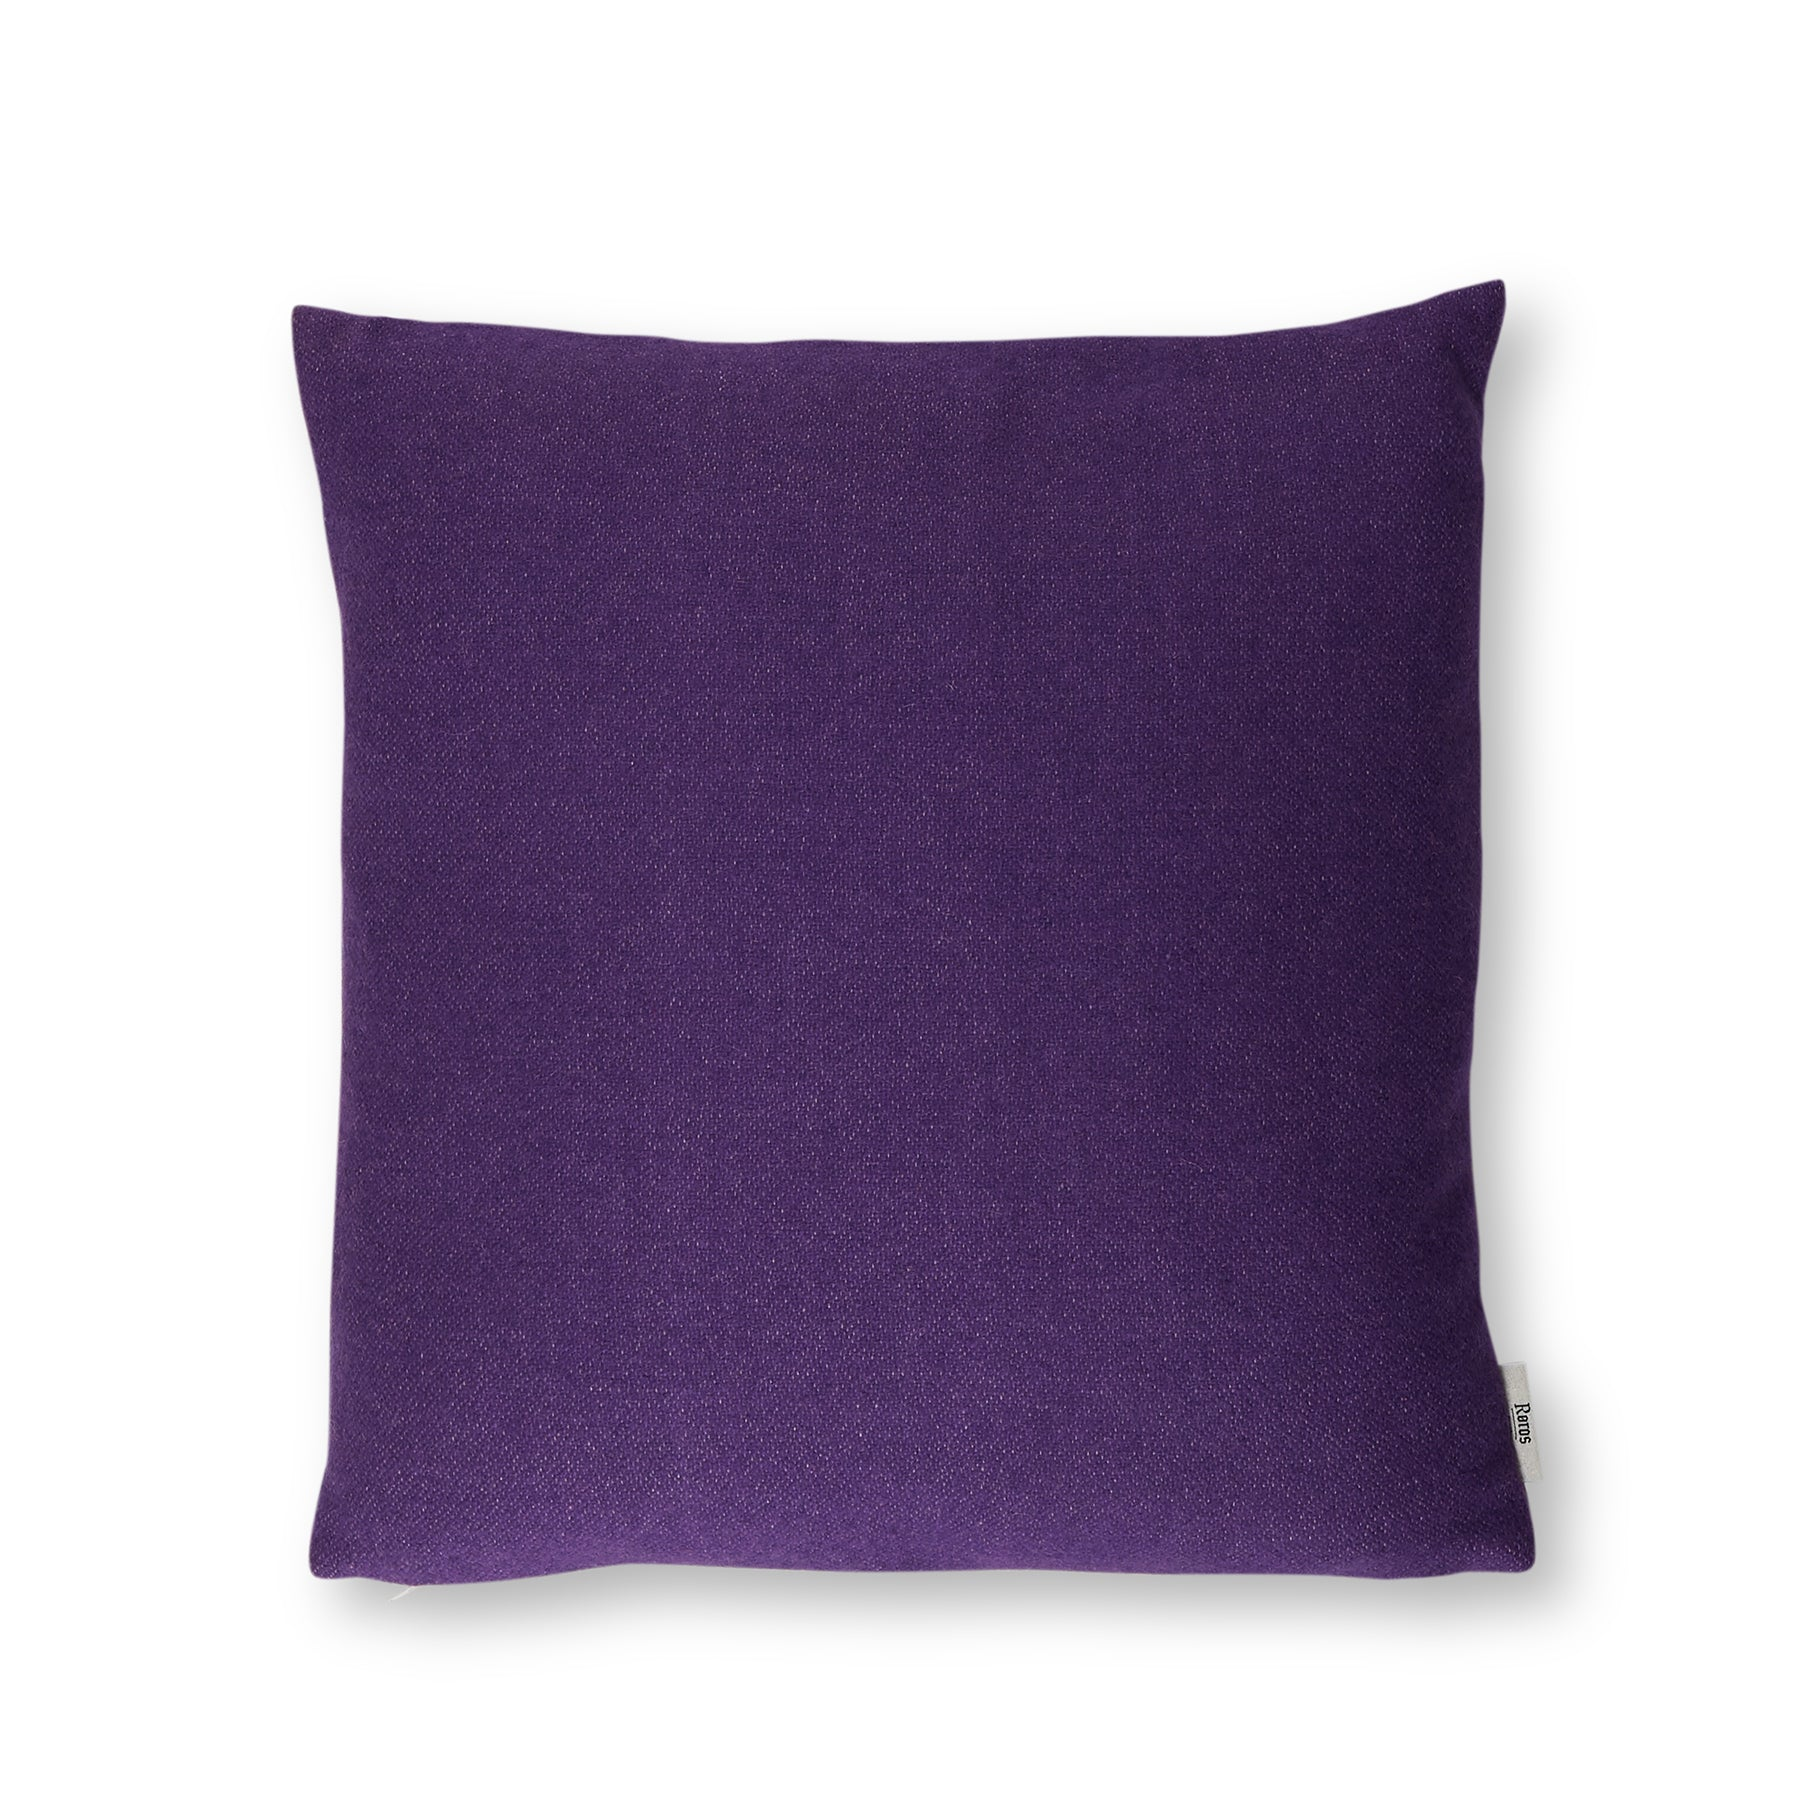 Stemor Pillow in Violet Zoom Image 1